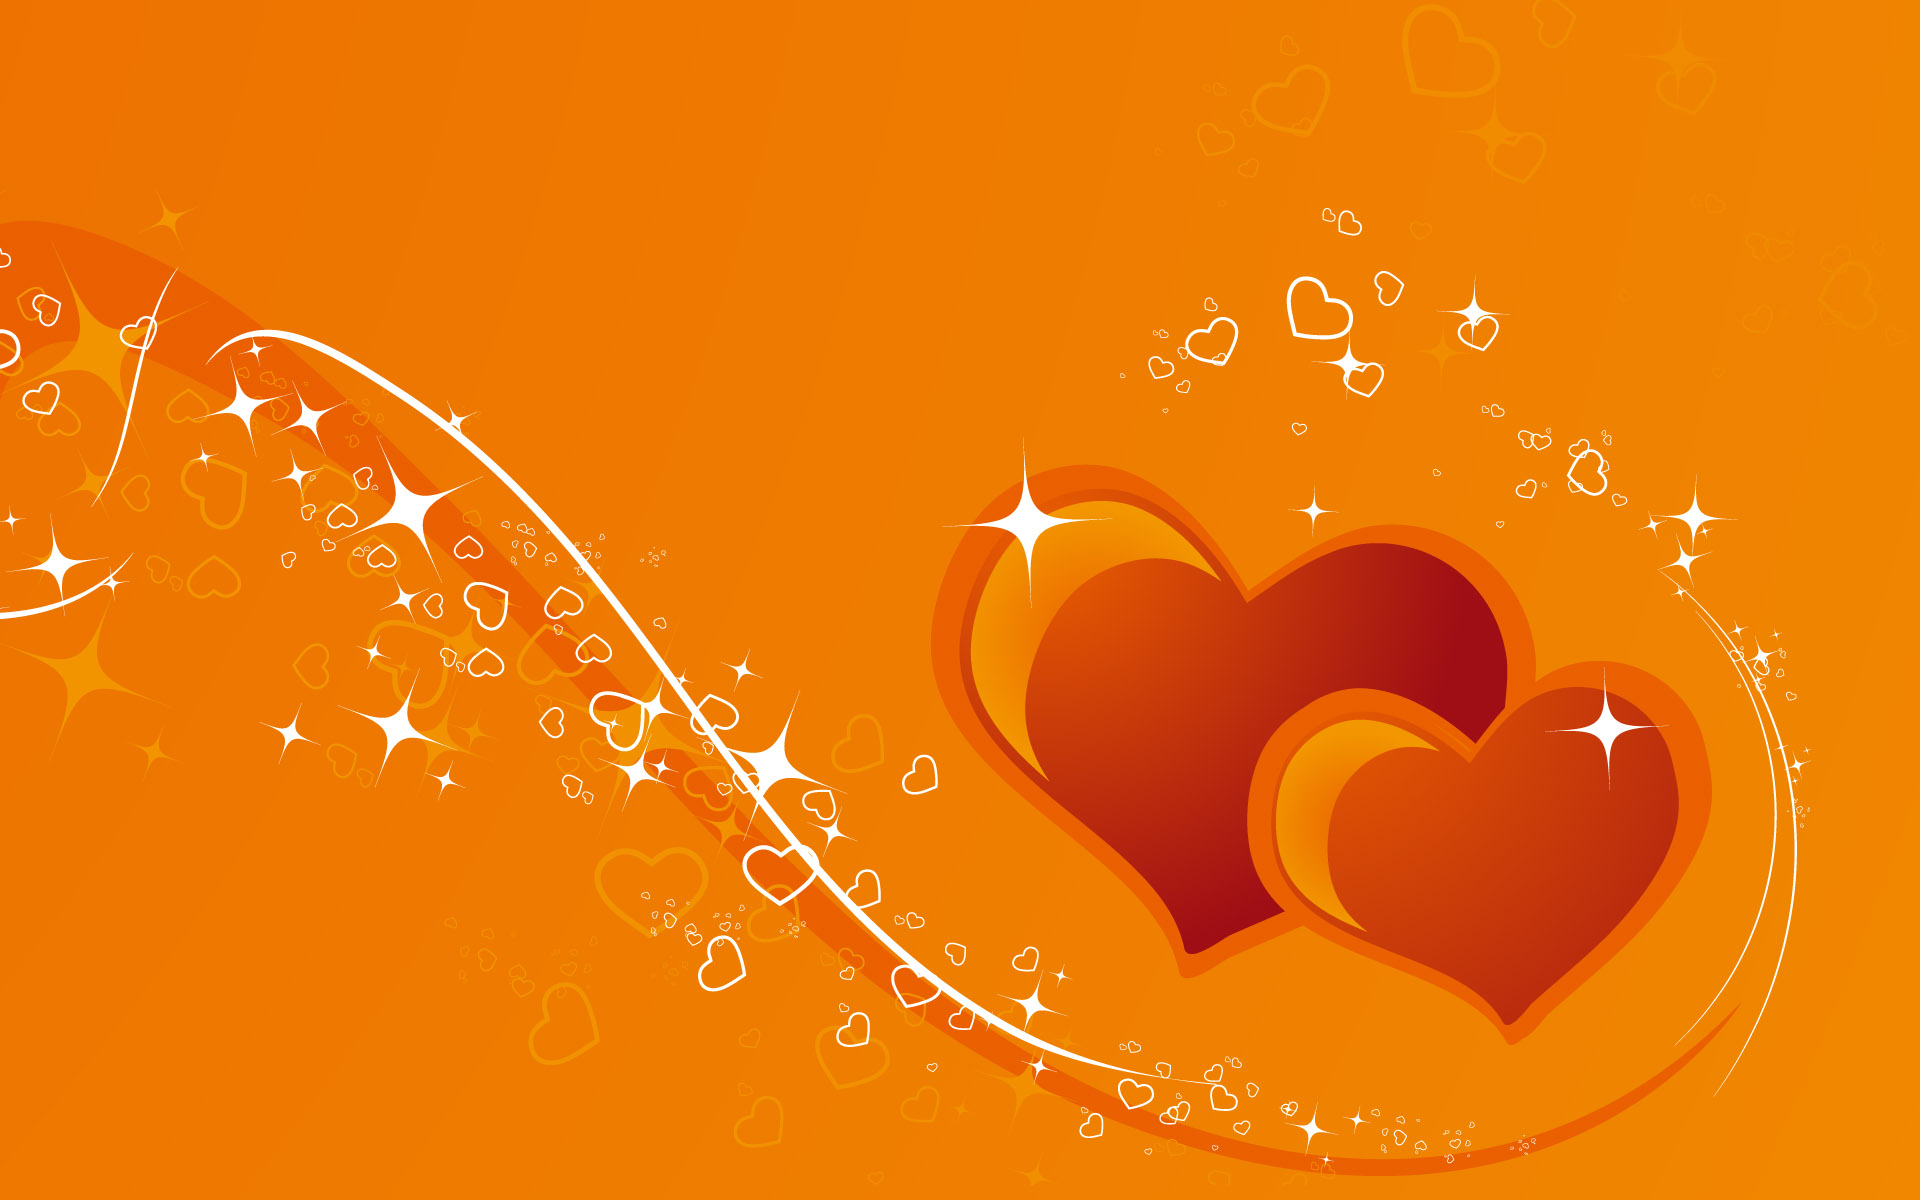 Wallpapers HD Valentine Wallpapers Desktop Backgrounds Valentine 1920x1200